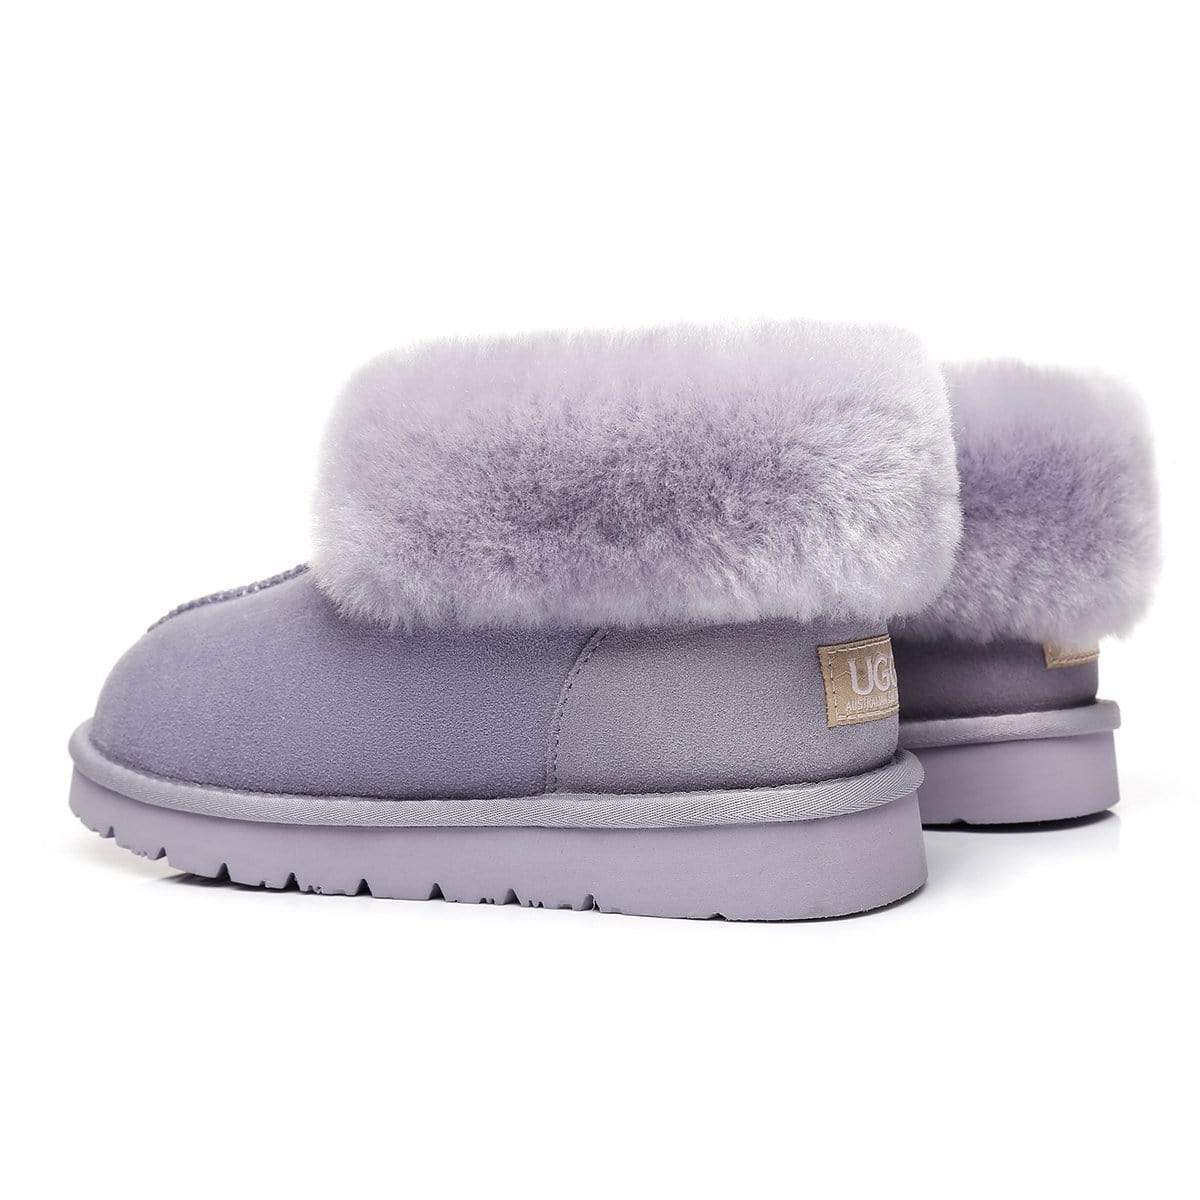 UGG Direct - Luxury Slippers - UGG Direct - Australia